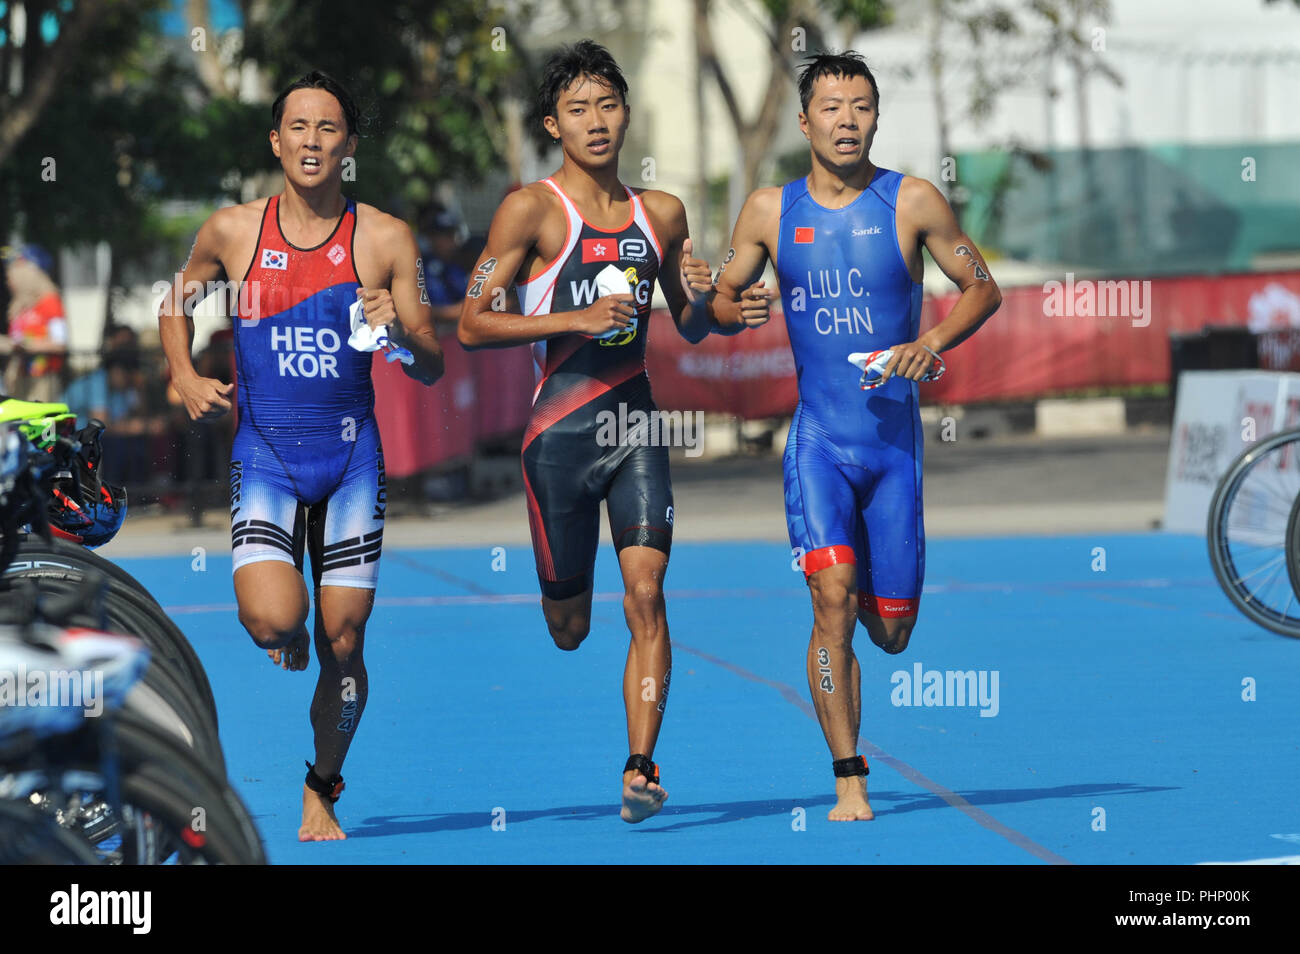 Palembang, Indonesia. 2nd Sep, 2018. Liu Chen (R) of China competes during mixed relay of Triathlon at the 18th Asian Games in Palembang, Indonesia, Sept. 2, 2018. Credit: Veri Sanovri/Xinhua/Alamy Live News - Stock Image